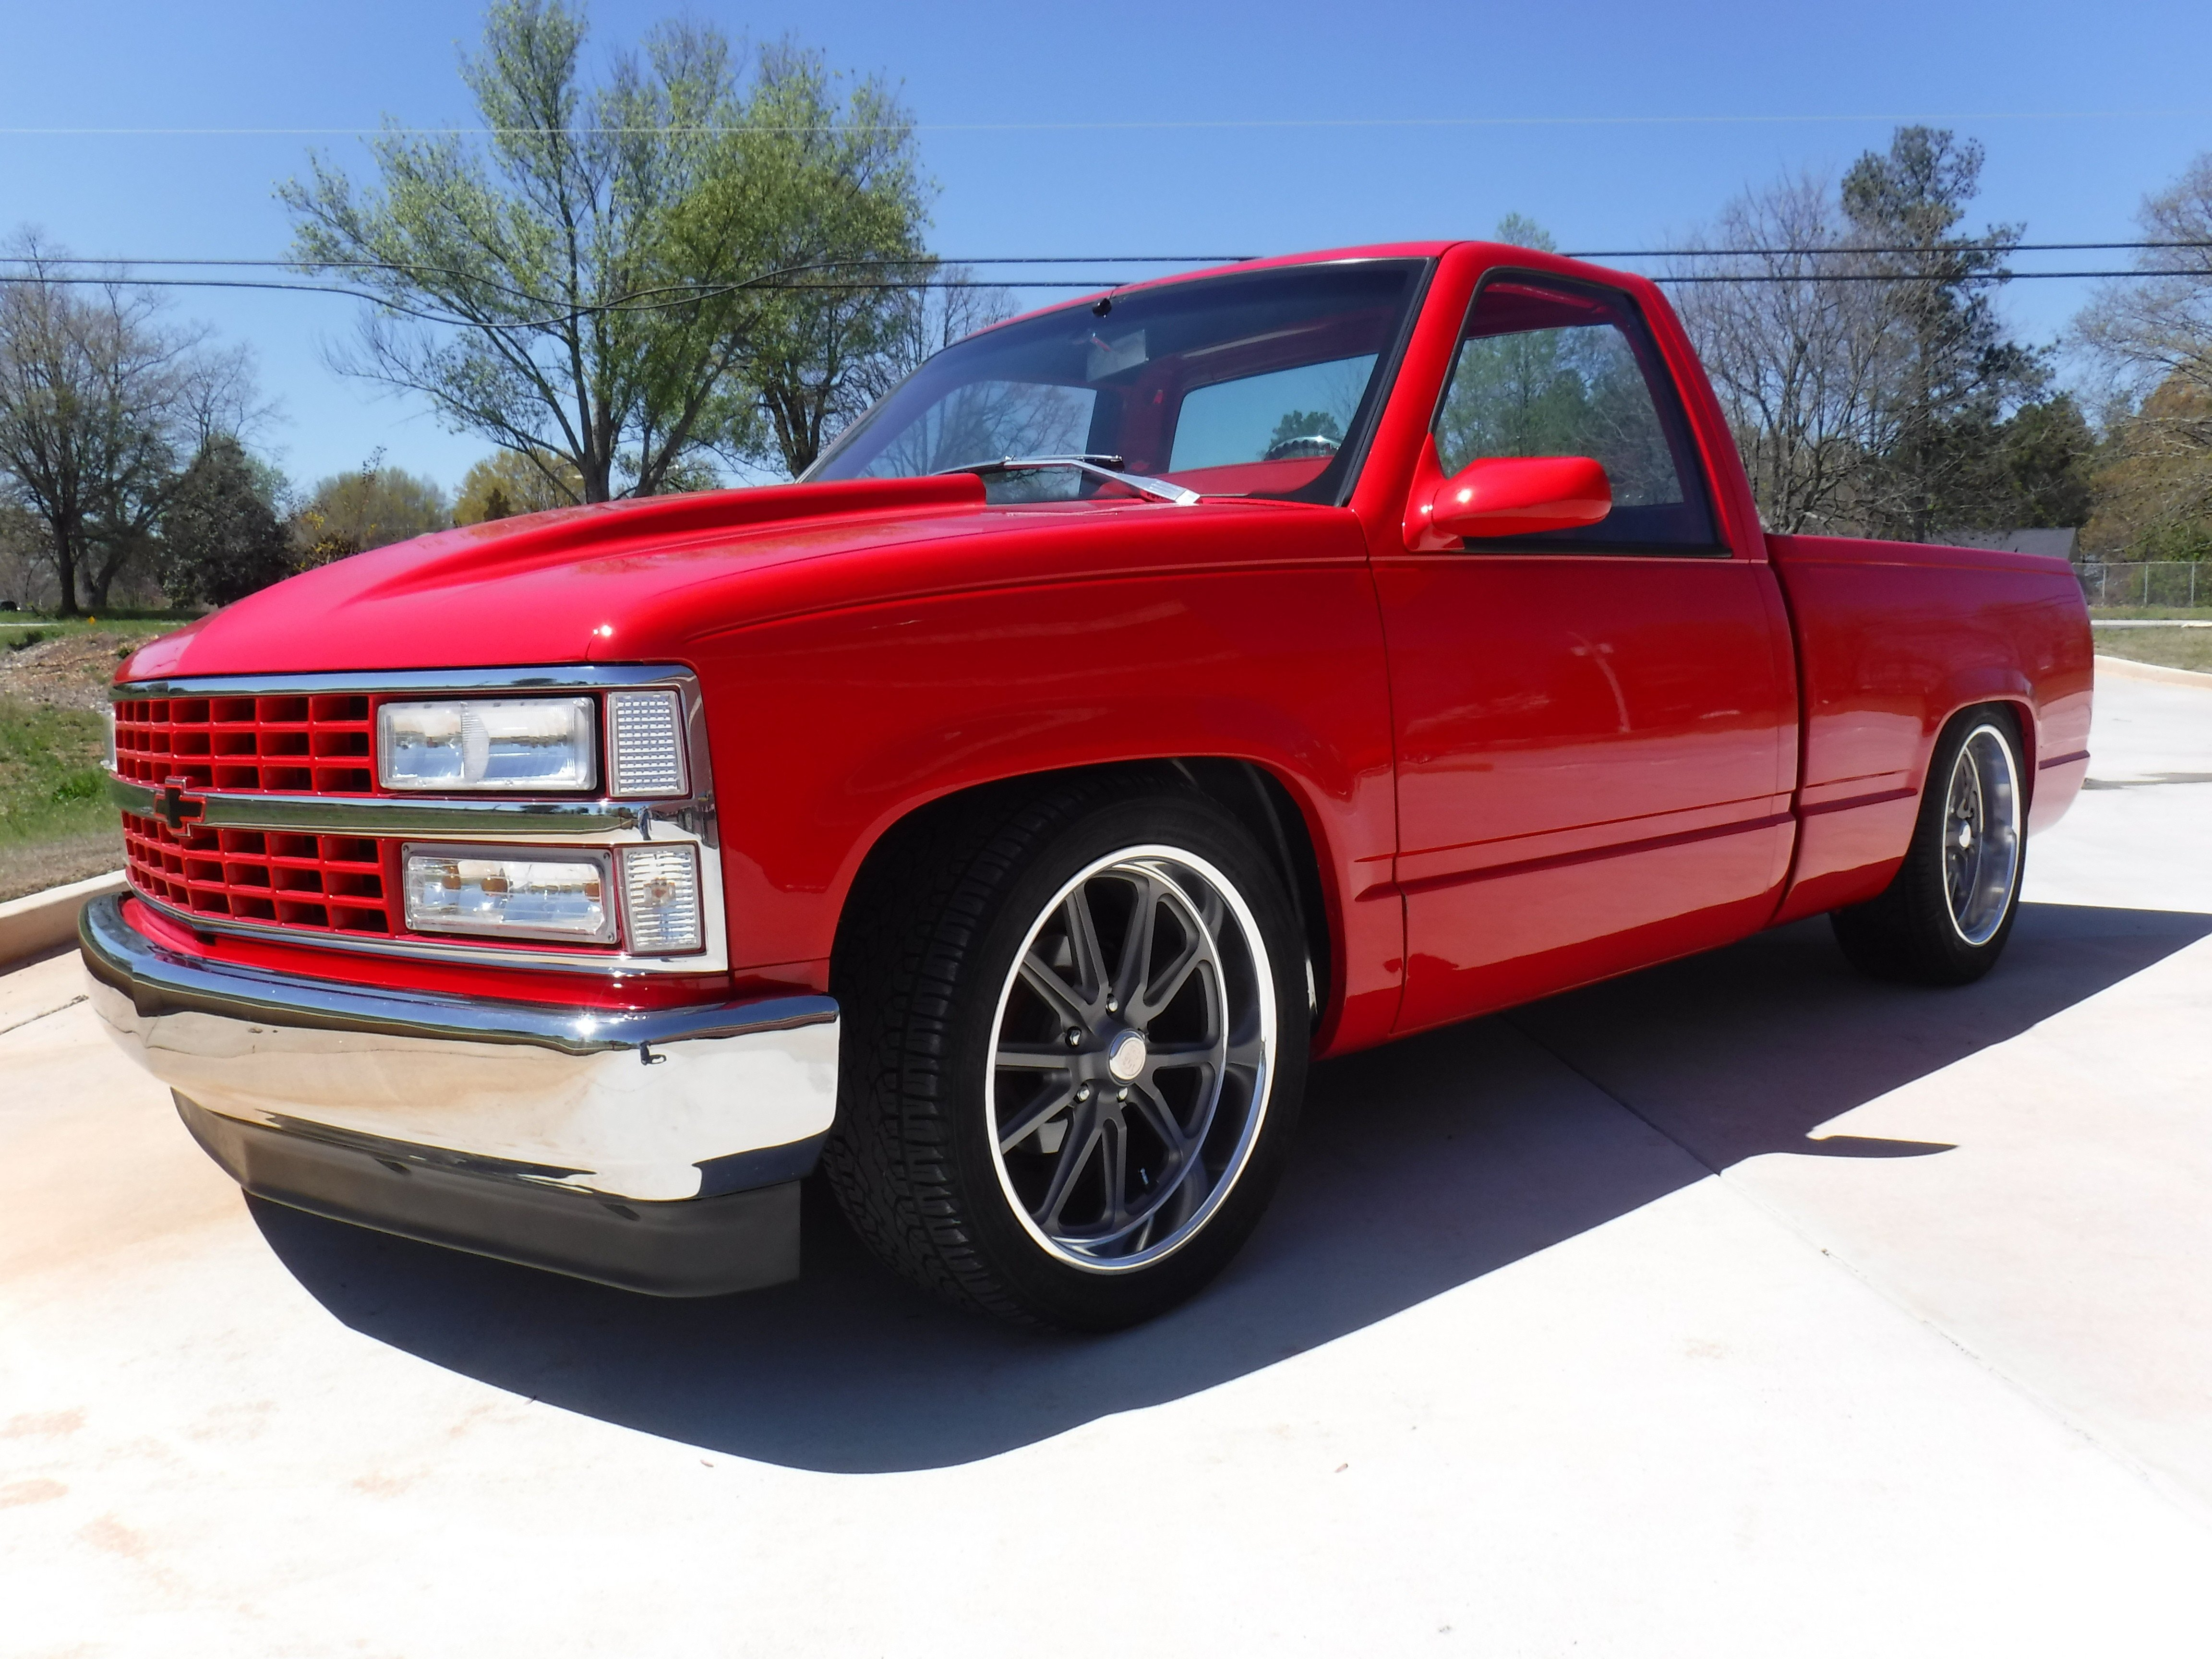 chevrolet trucks for sale. 1988 chevrolet silvera trucks for sale l